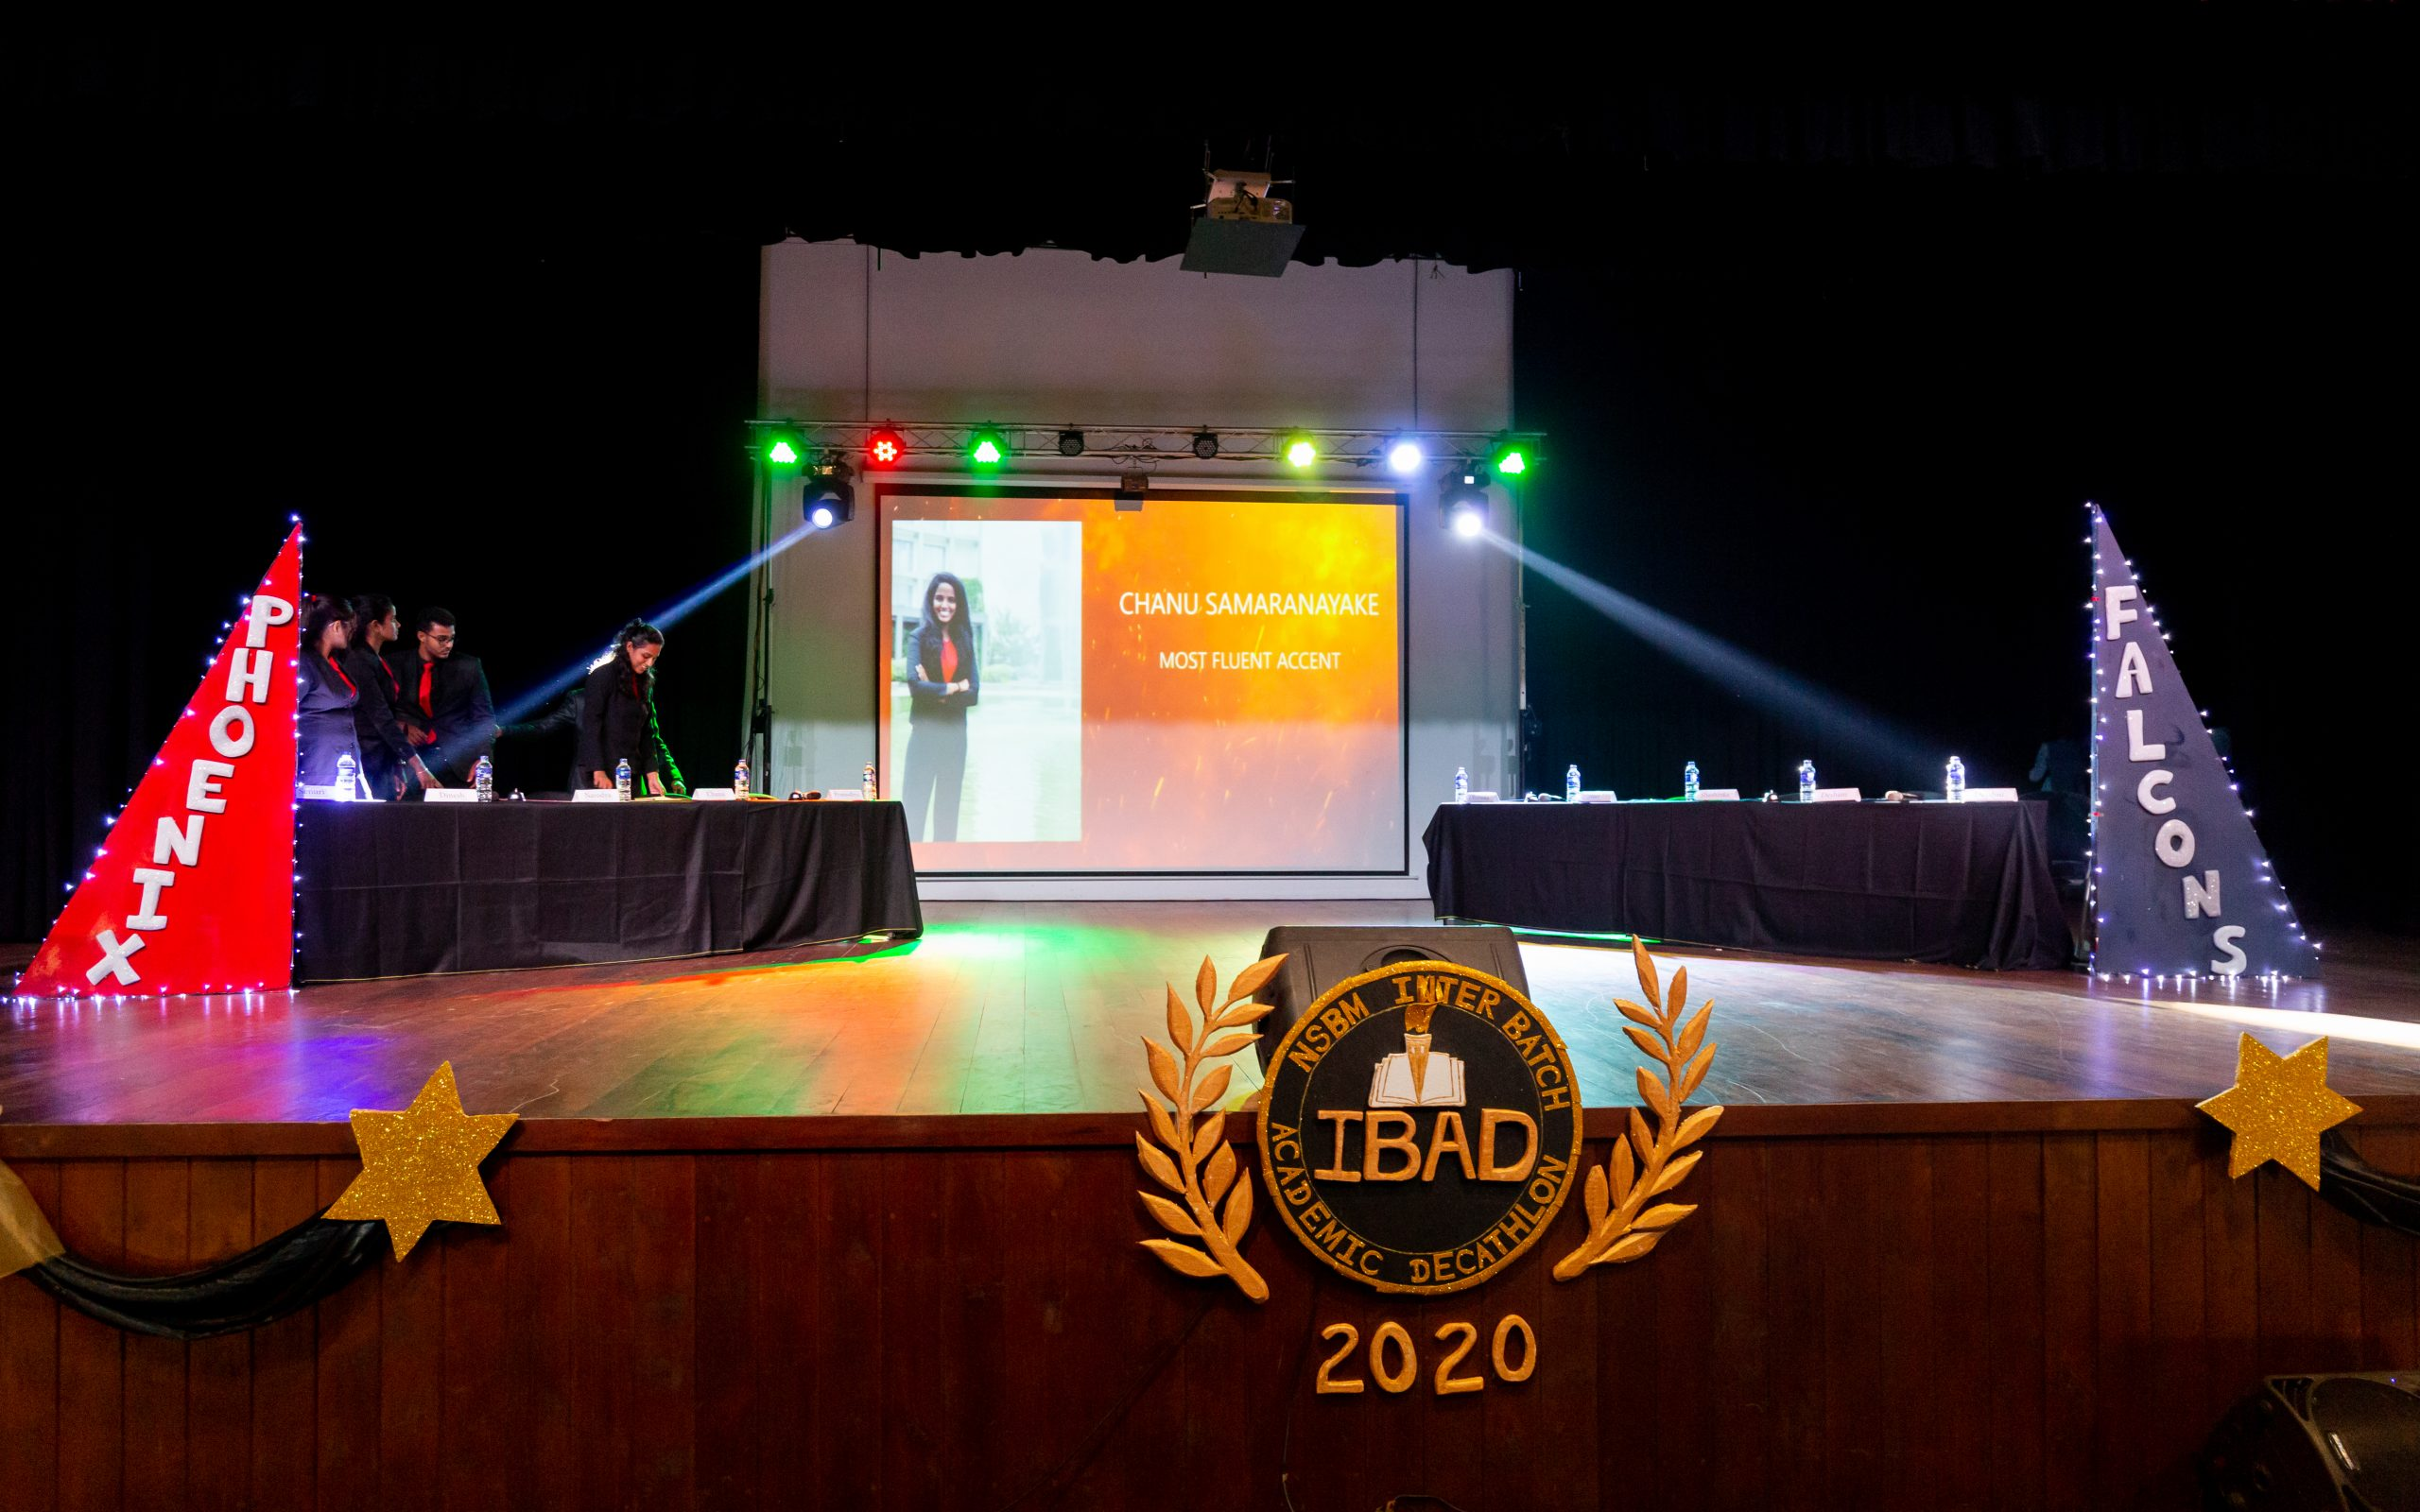 Inter Batch Academic Decathlon – IBAD 2020